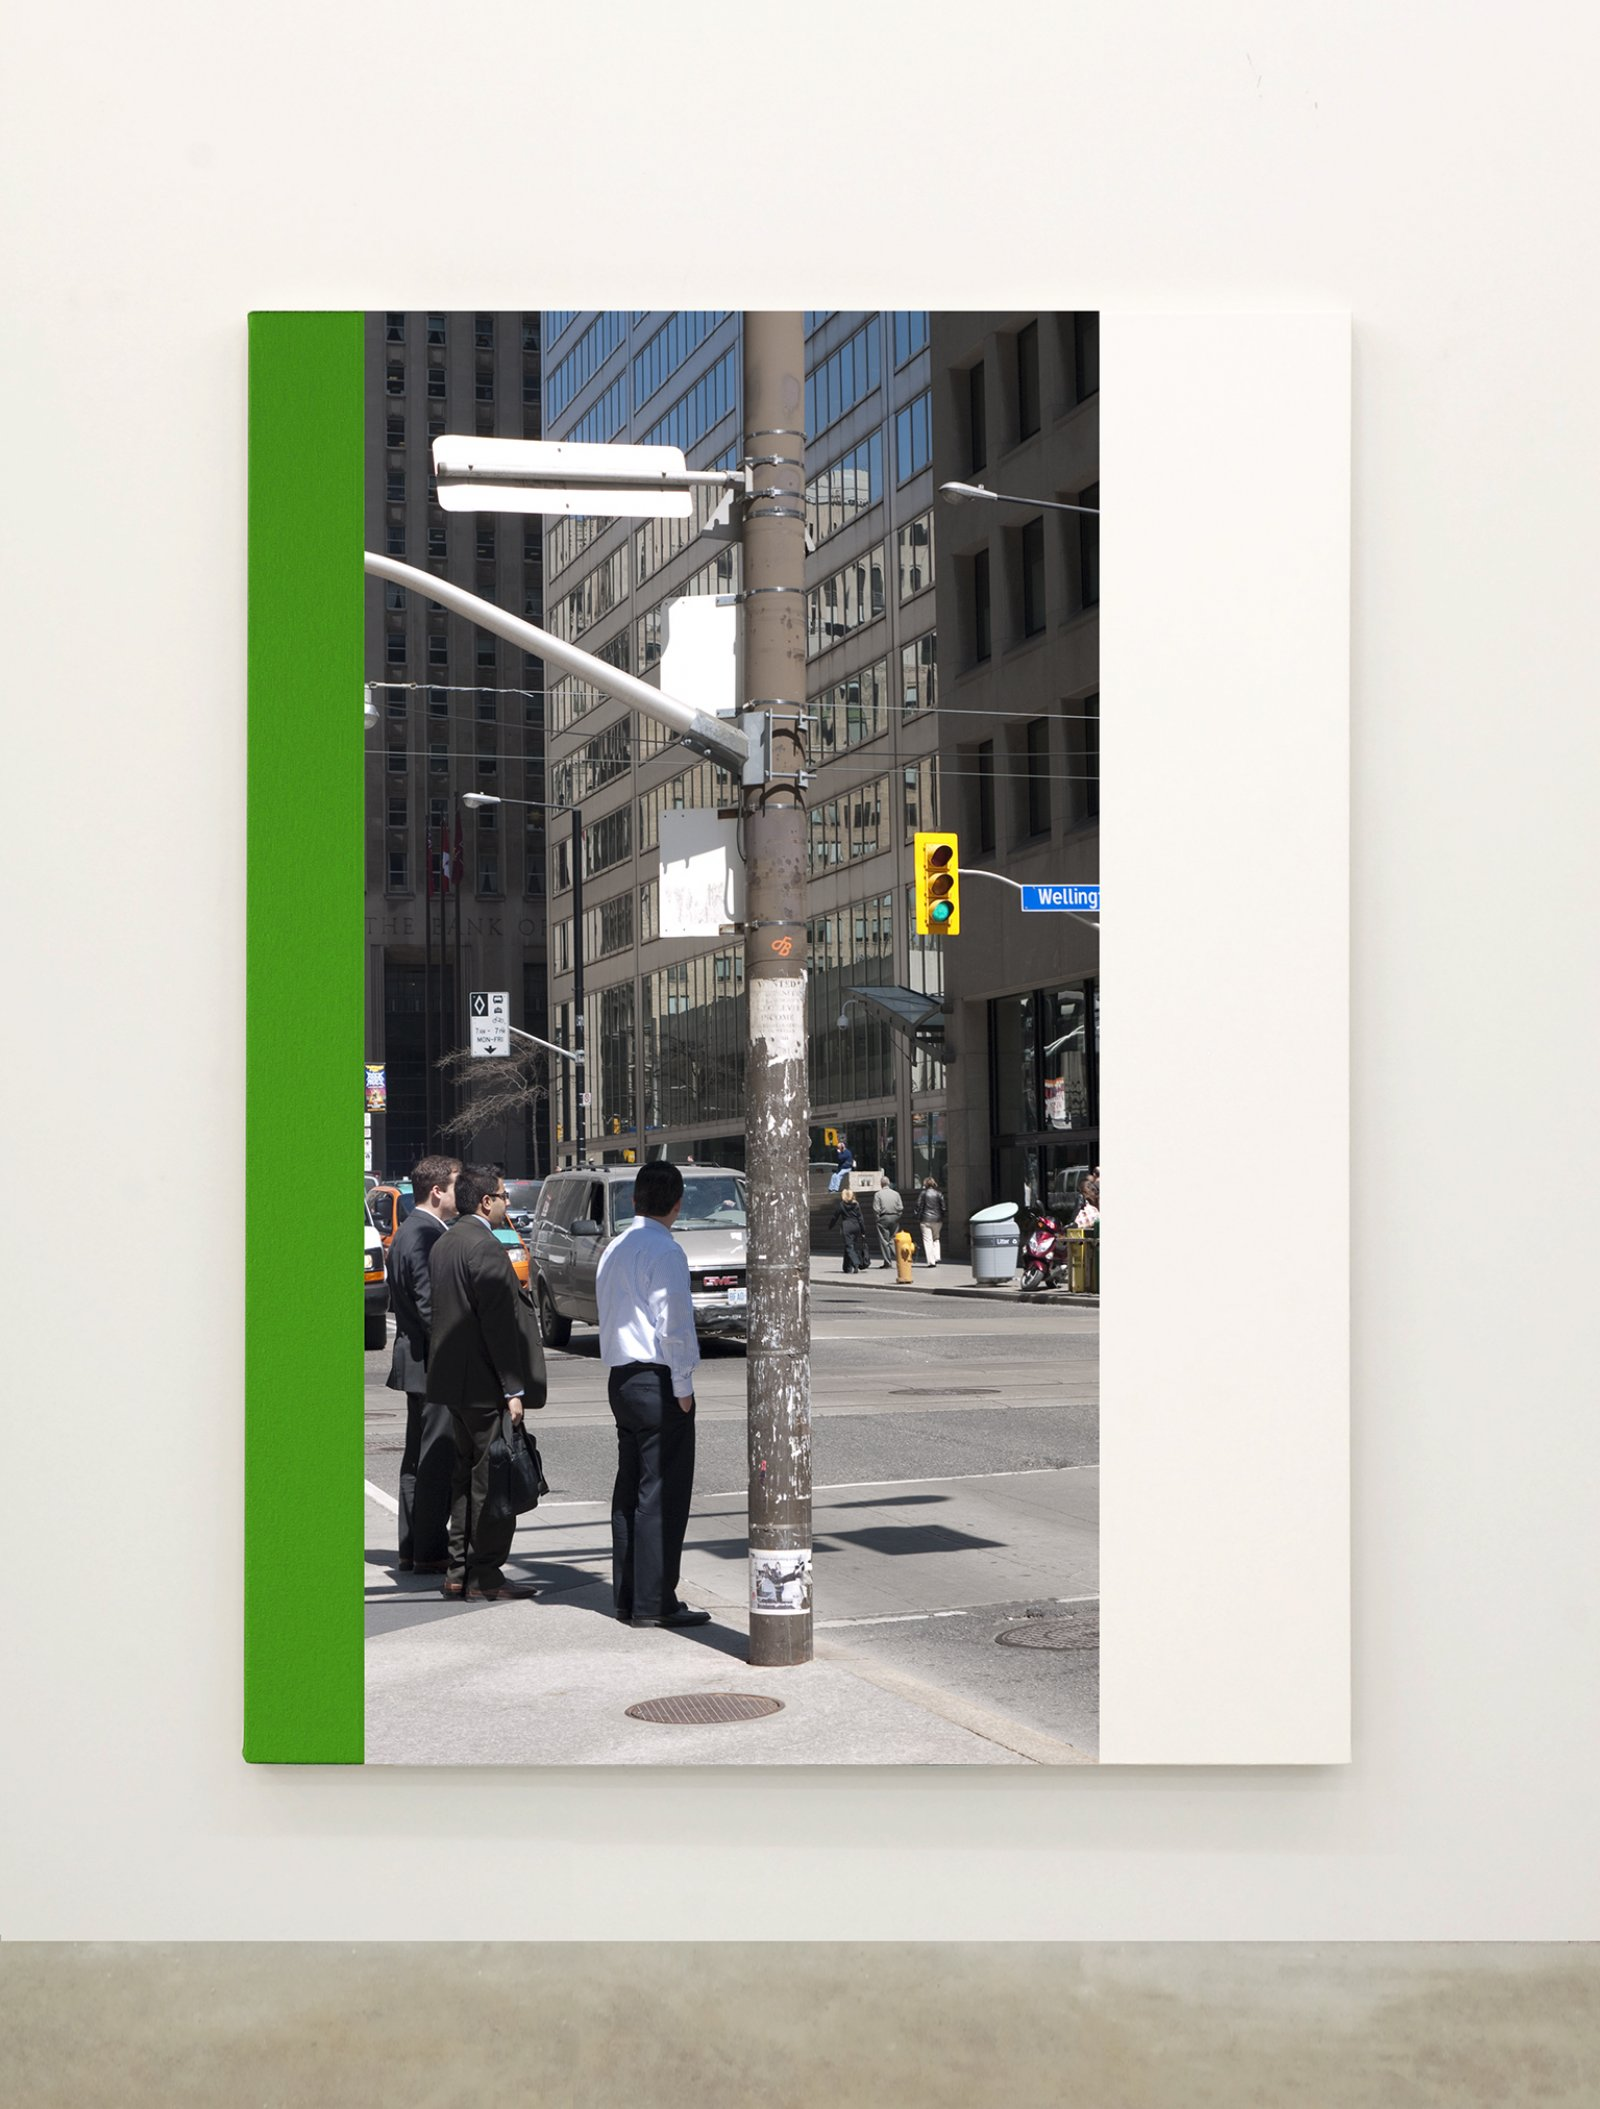 Ian Wallace,Abstract Painting I(The Financial District), 2010,12 photolaminate with acrylic on canvas panels, each 96 x 72 in. (244 x 183 cm)